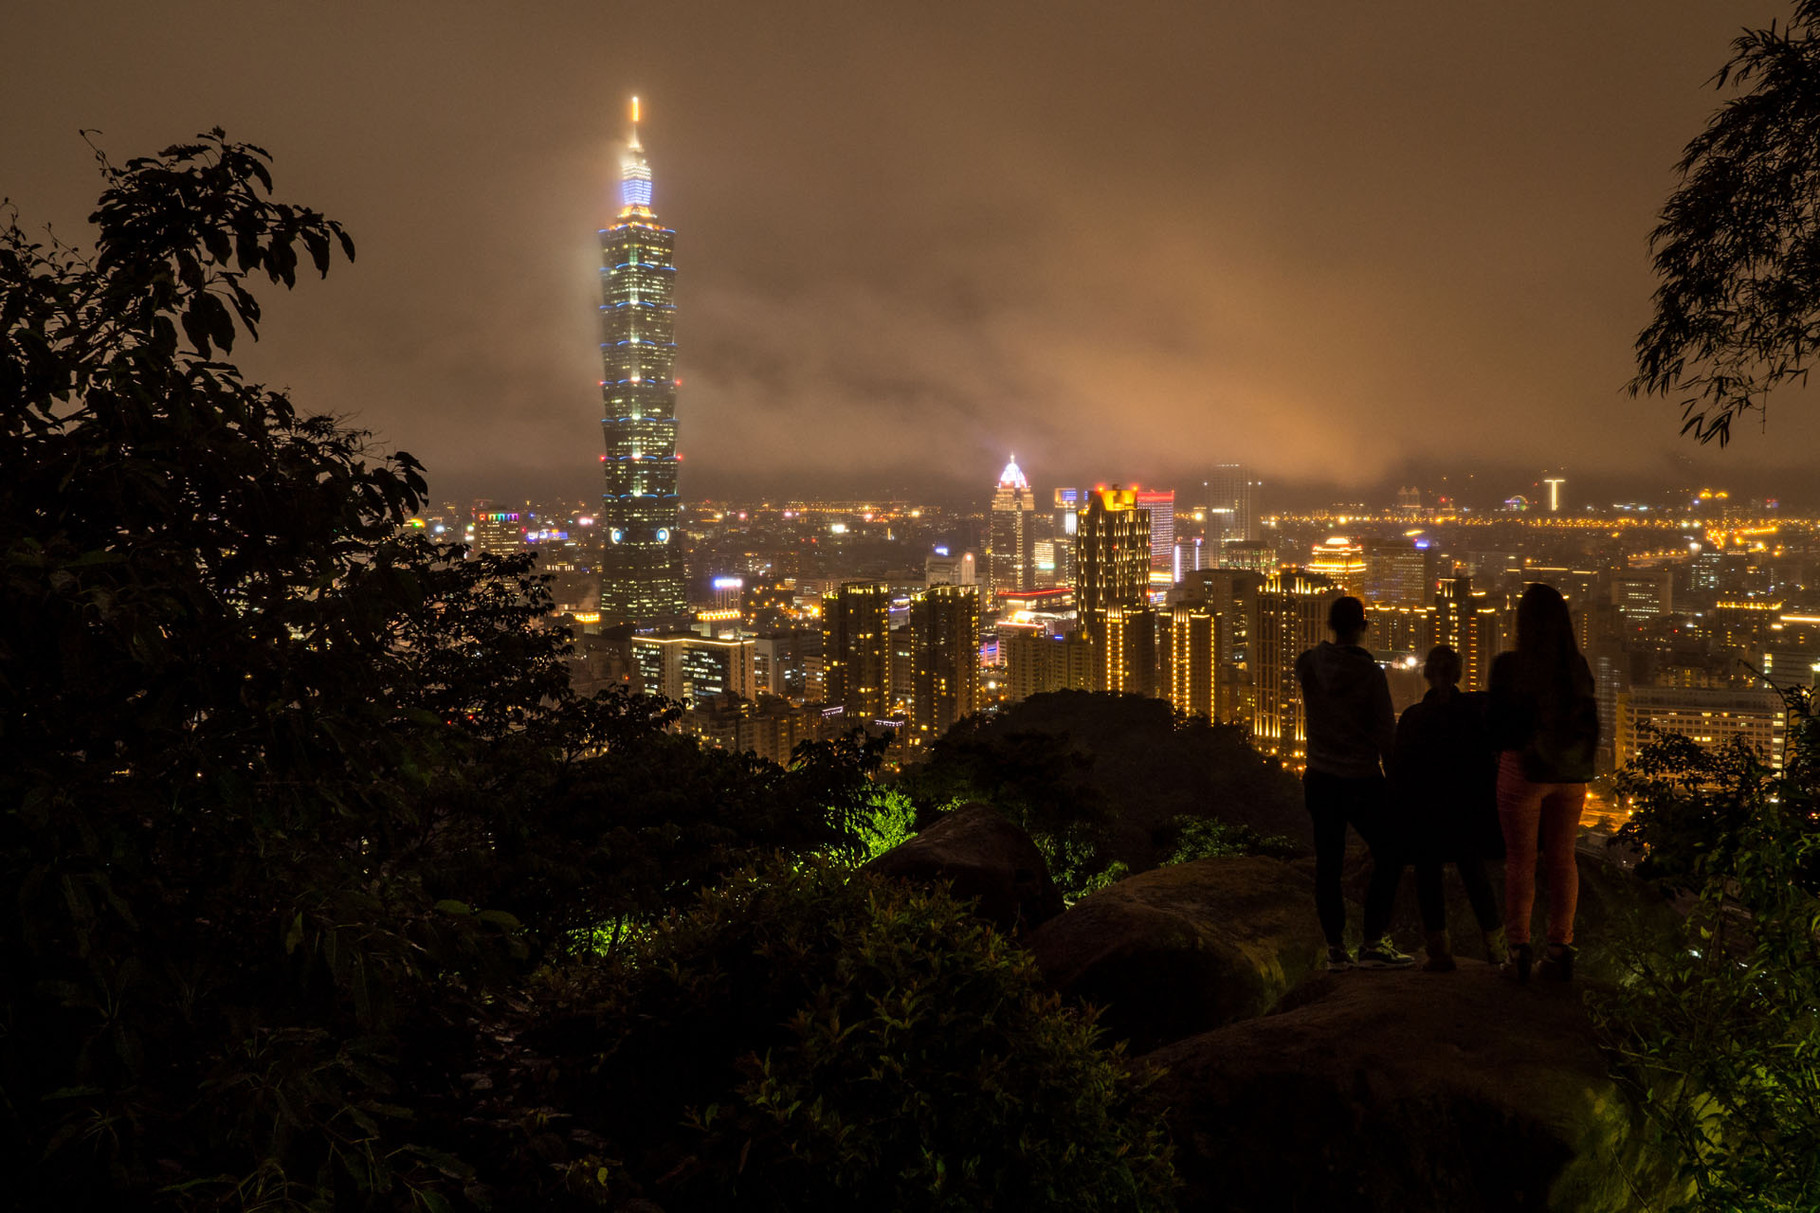 Taipei and the iconic Taipei101 tower during a cloudy night, photographed from the Elephant mountain